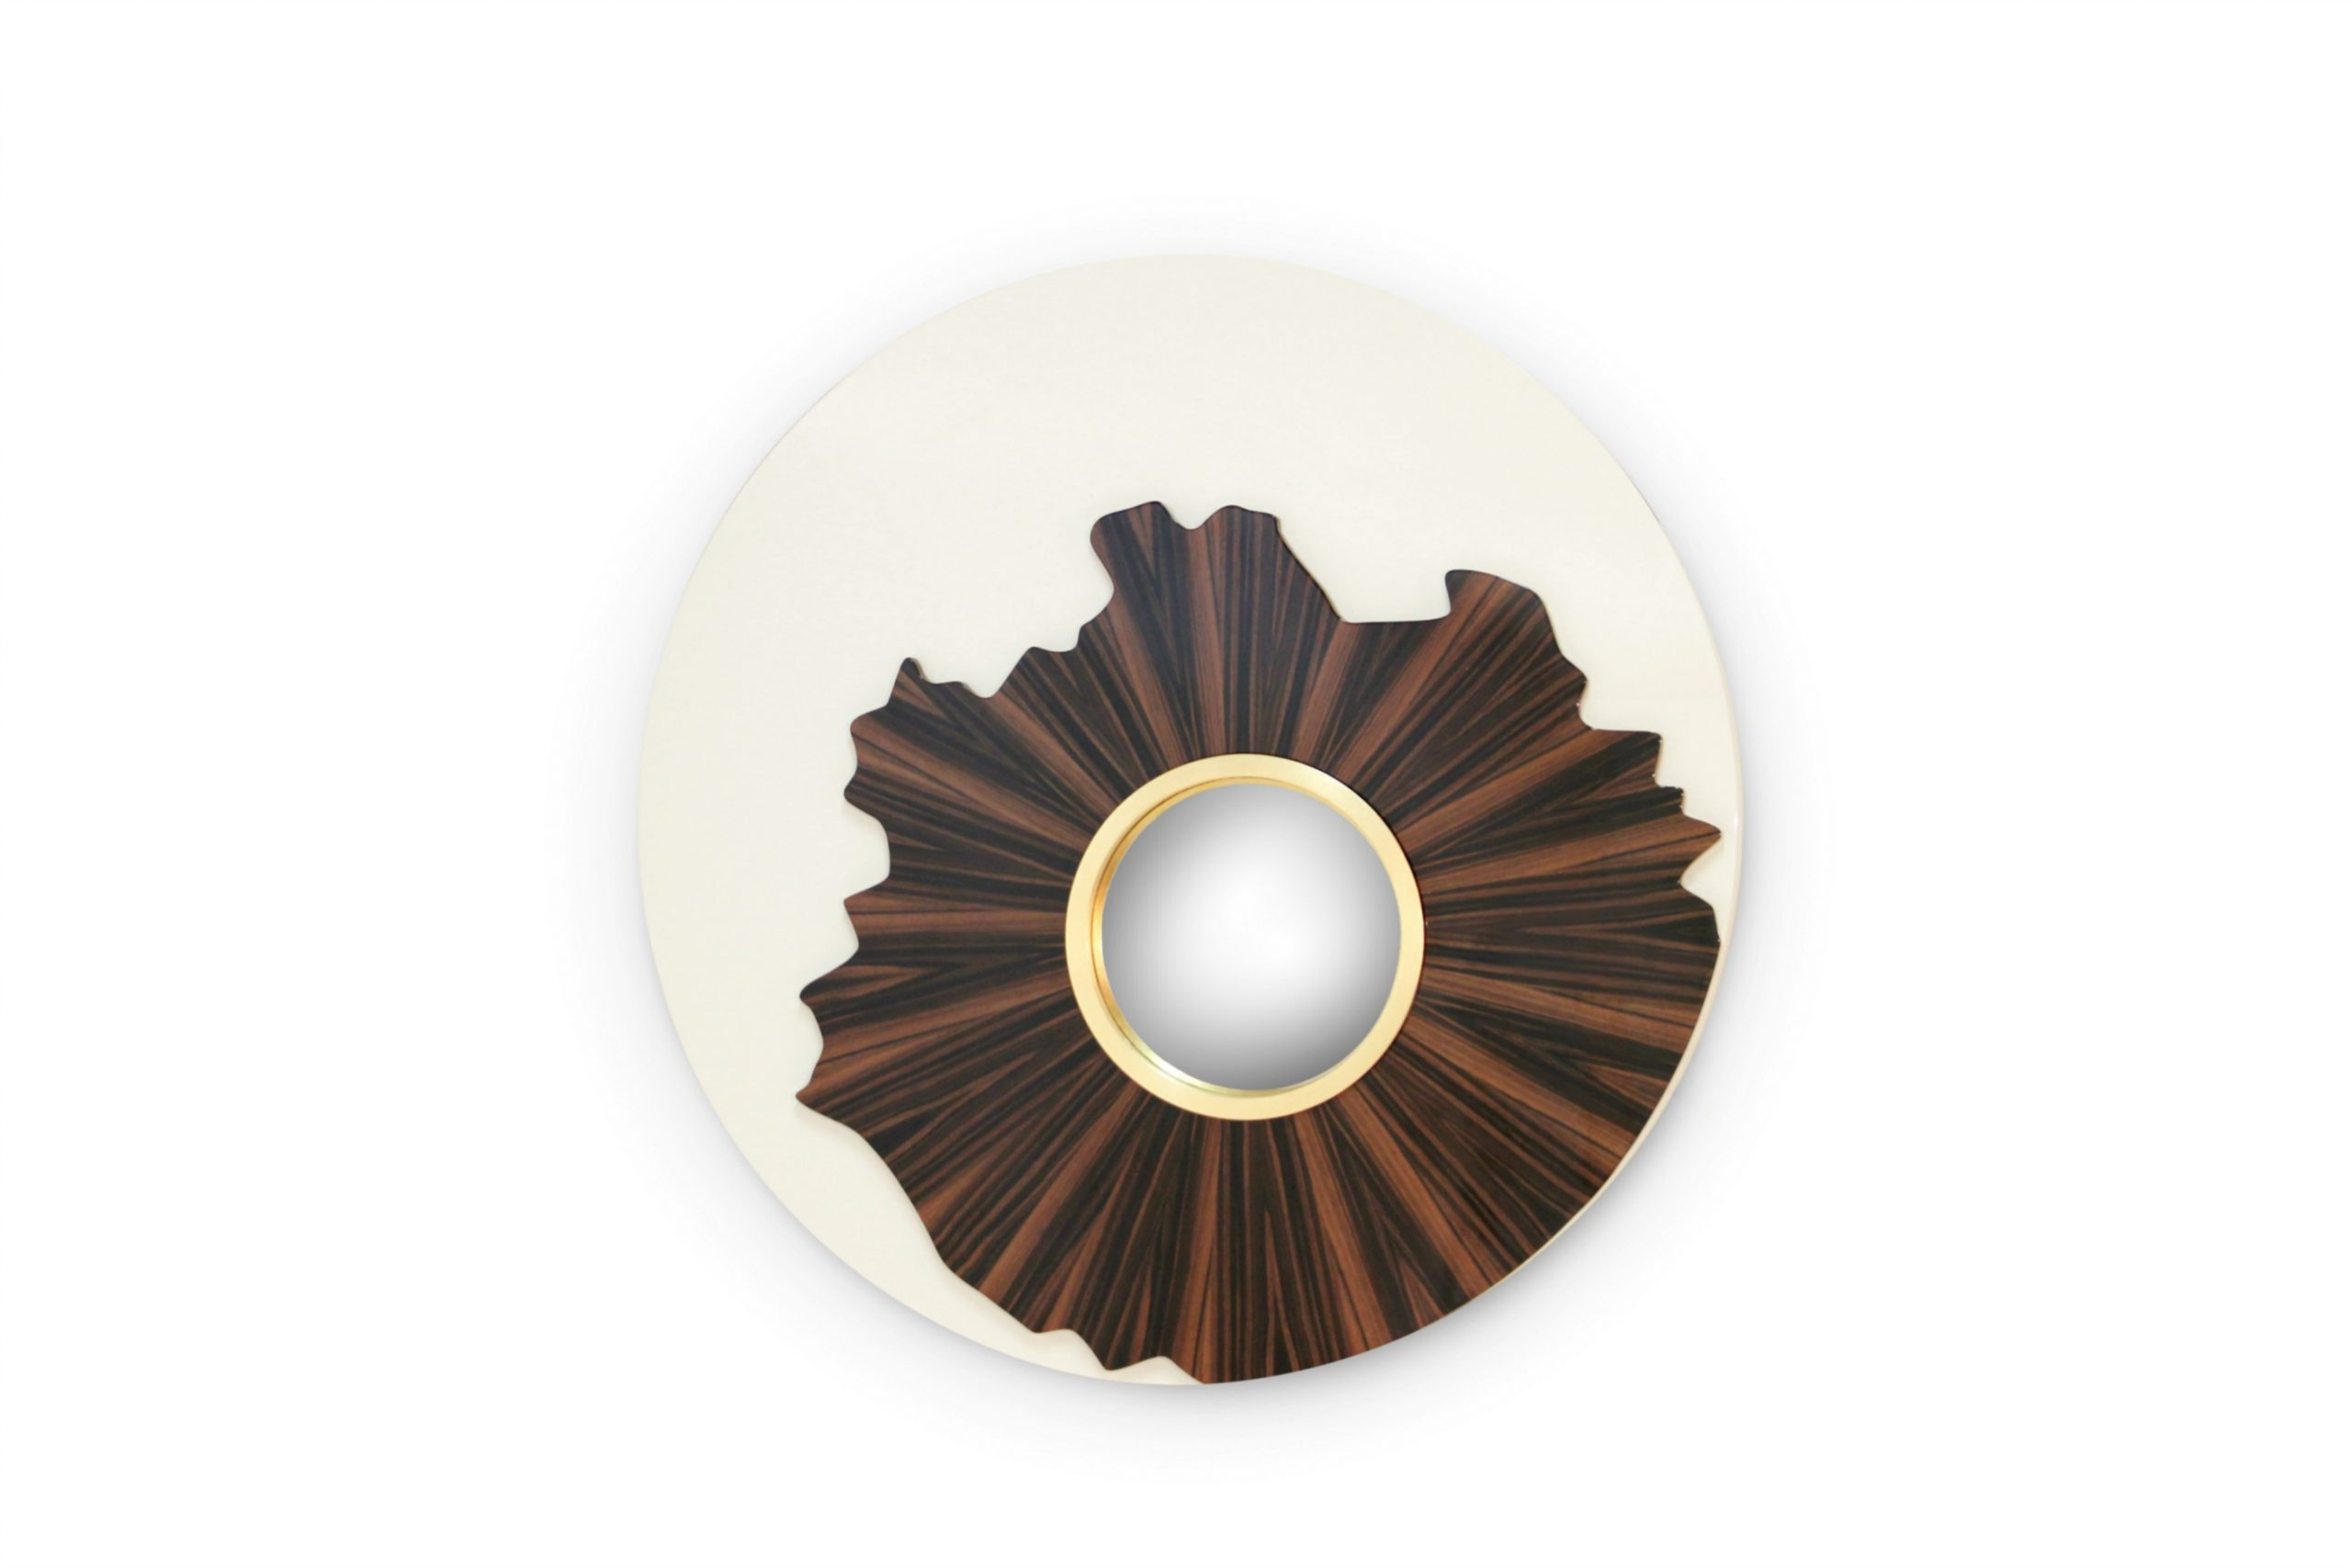 Round Mirrors: Find Out Extraordinary Pieces to Highlight your House round mirrorsRound Mirrors: Find Out Extraordinary Pieces to Highlight your Houseiris mirror 1 HR scaled